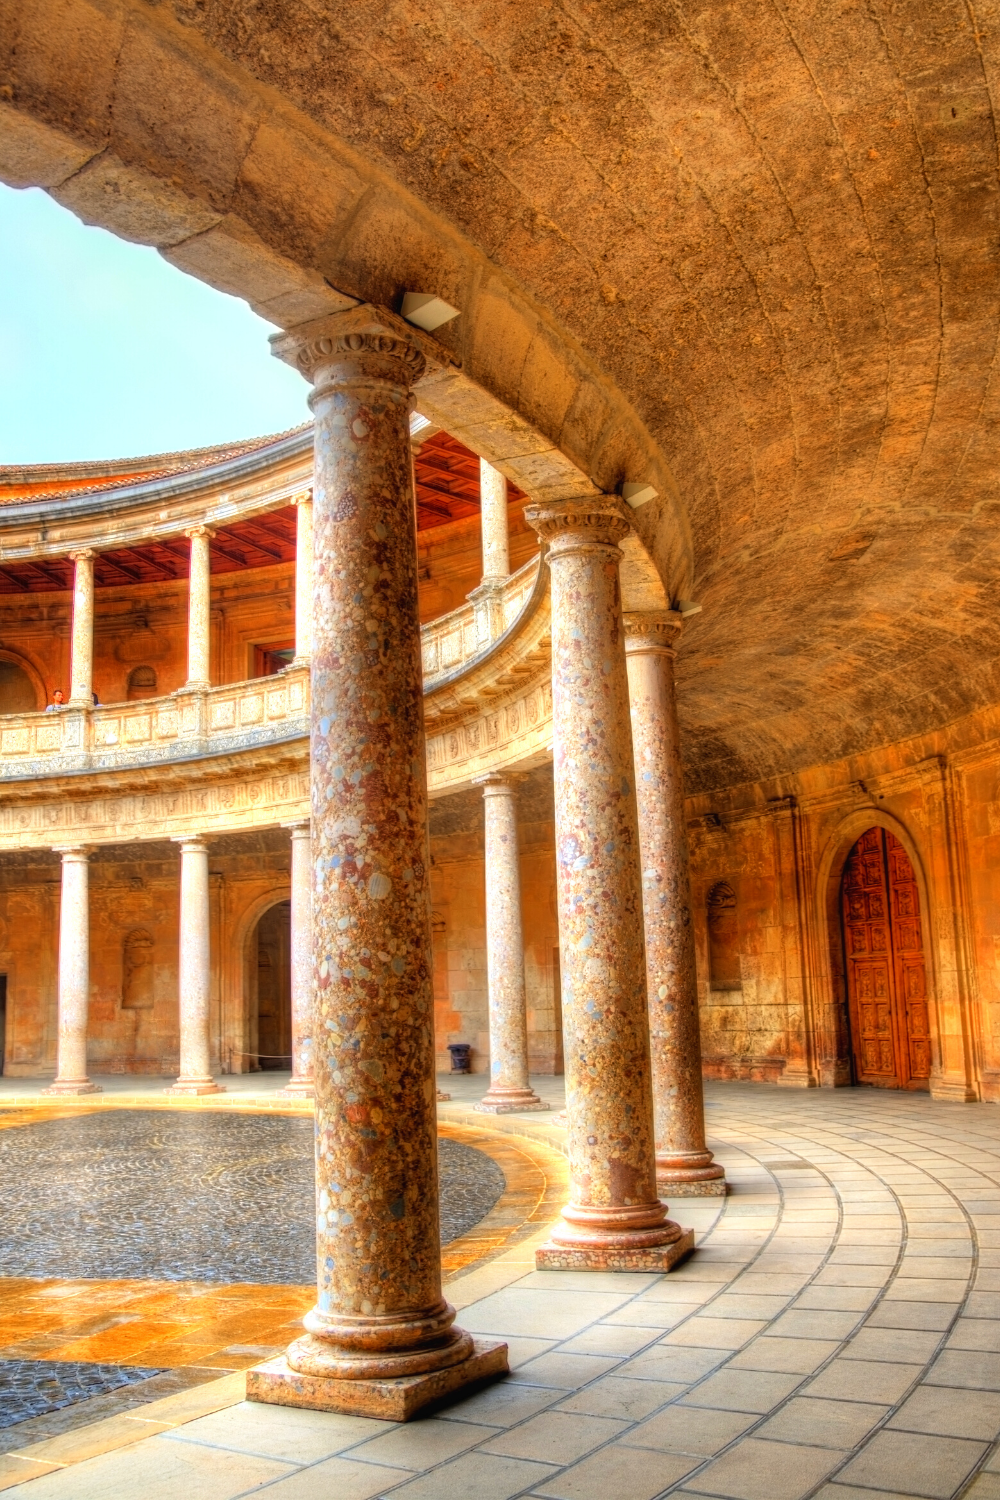 Charles V's Renaissance Palace in the Alhambra